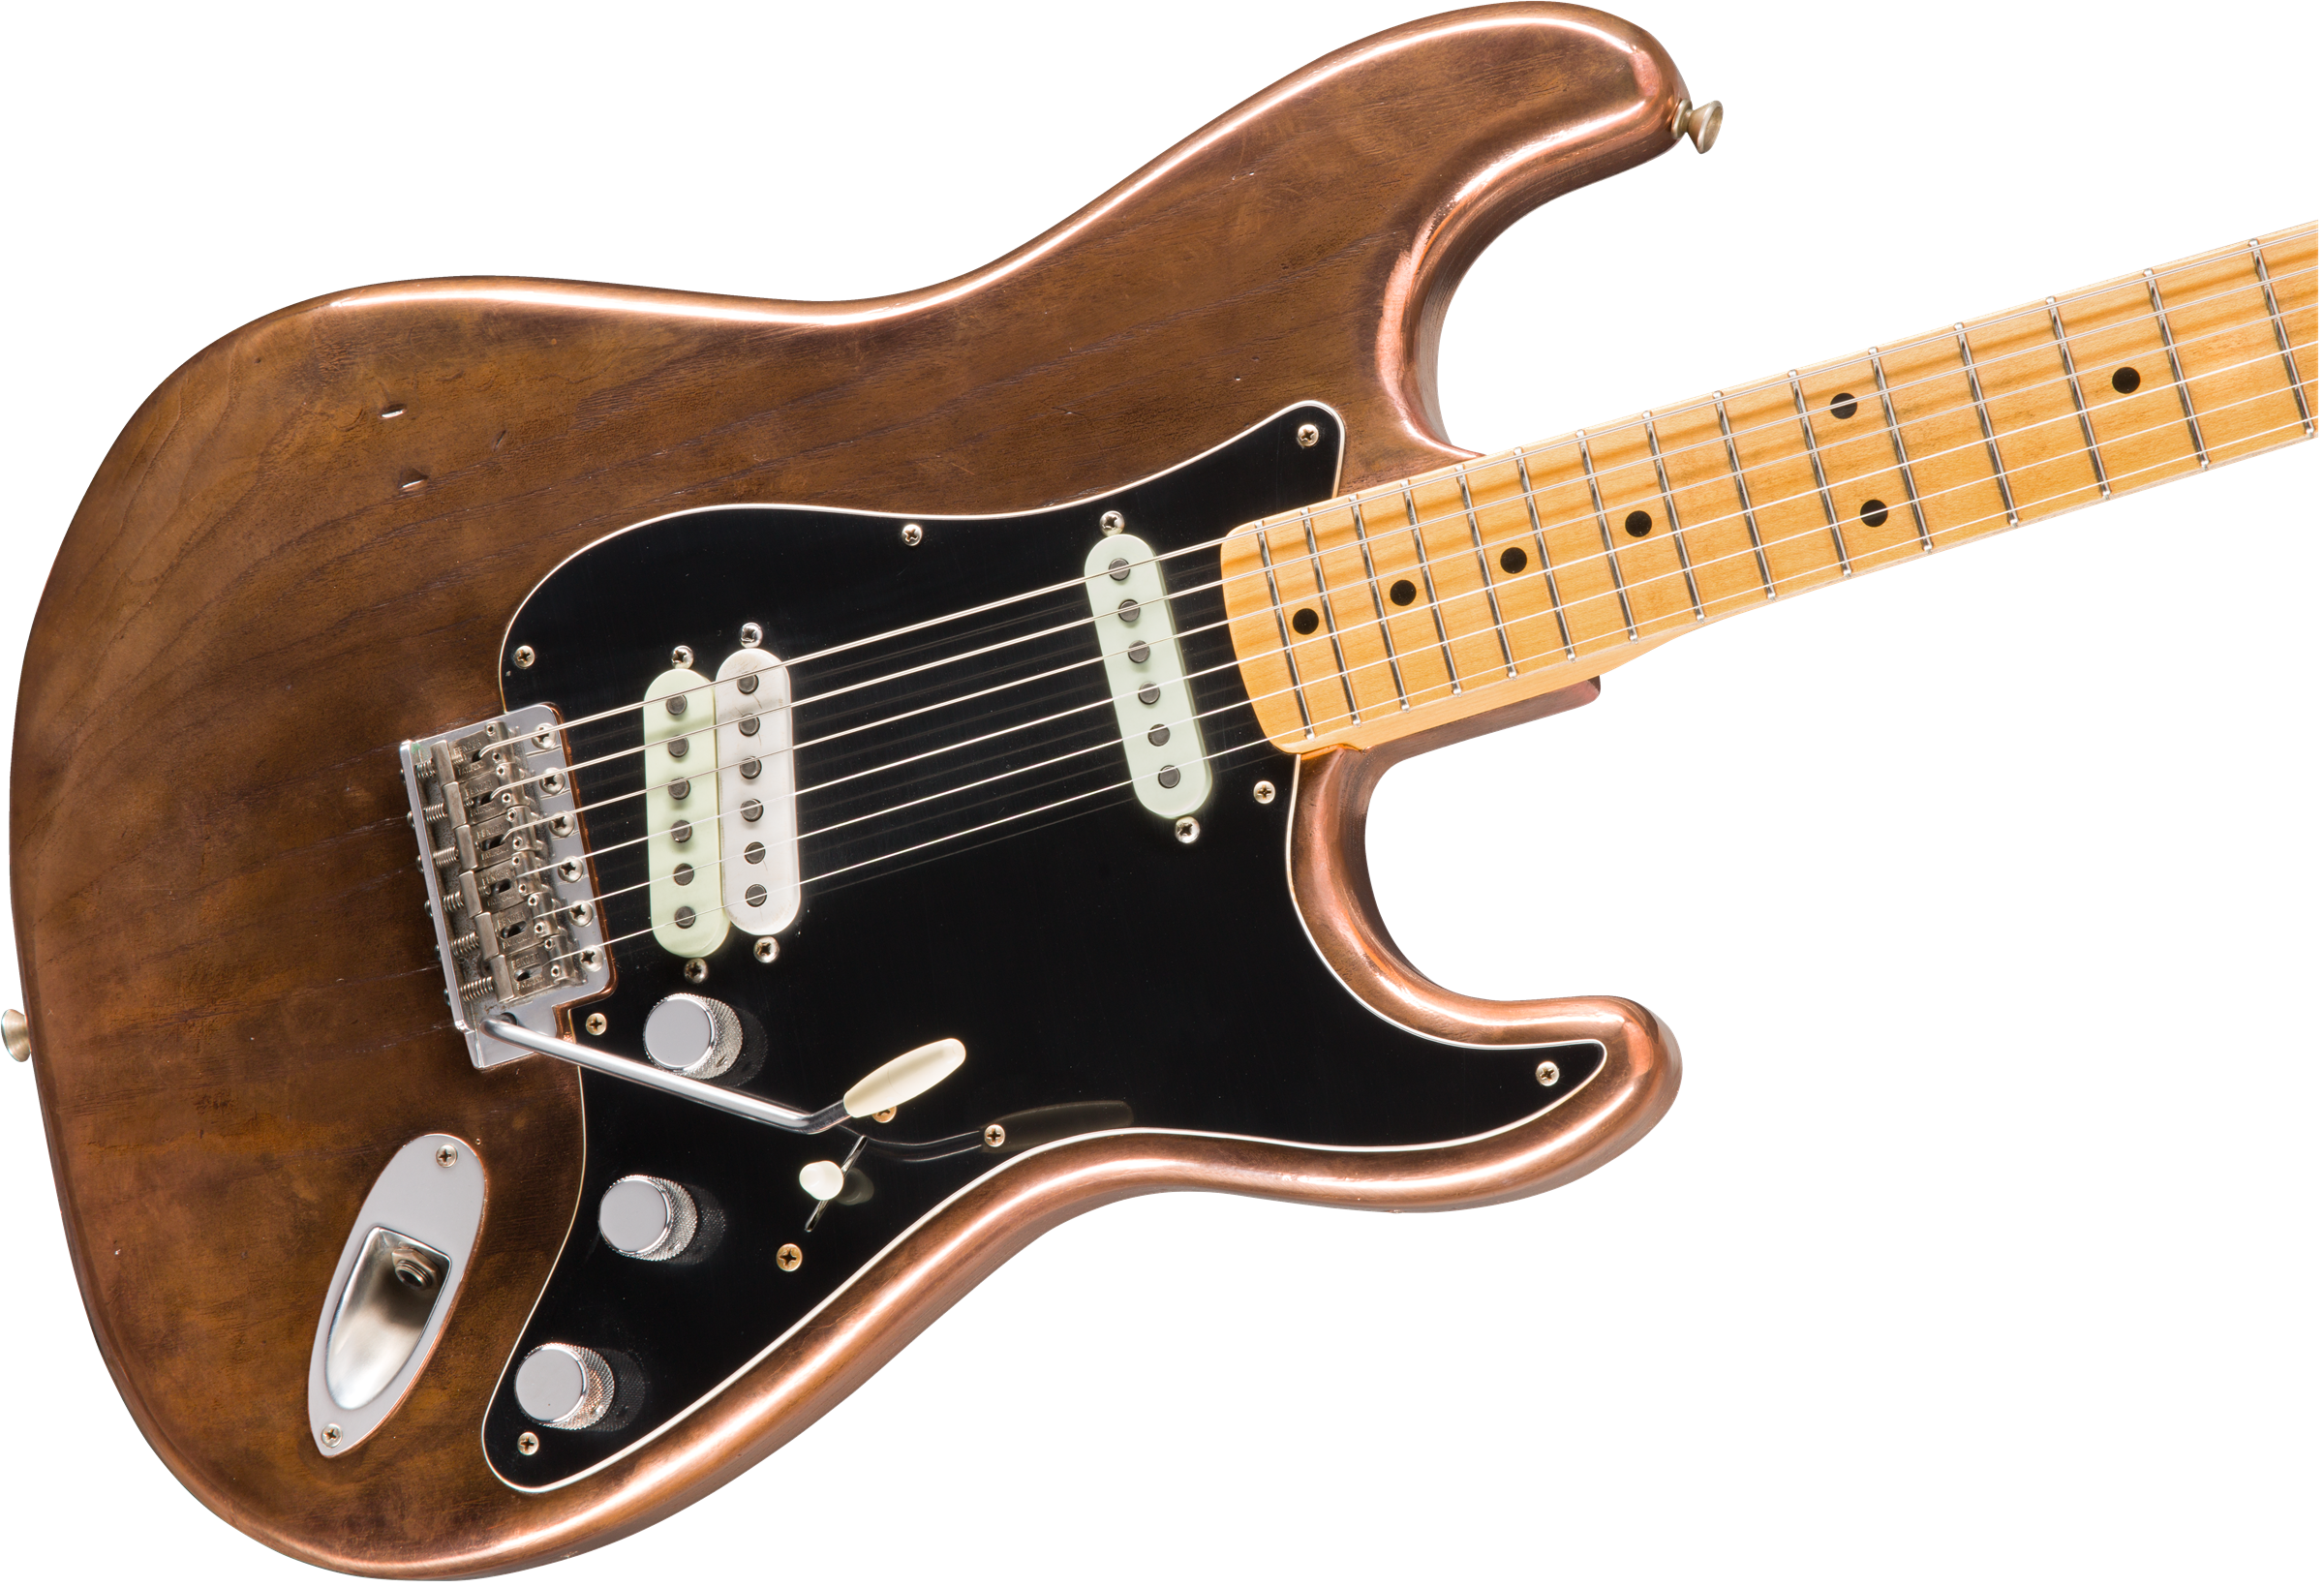 Limited Edition Robbie Robertson Last Waltz Stratocaster Artist Fender Hs Tele Wiring Diagrams Hover To Zoom